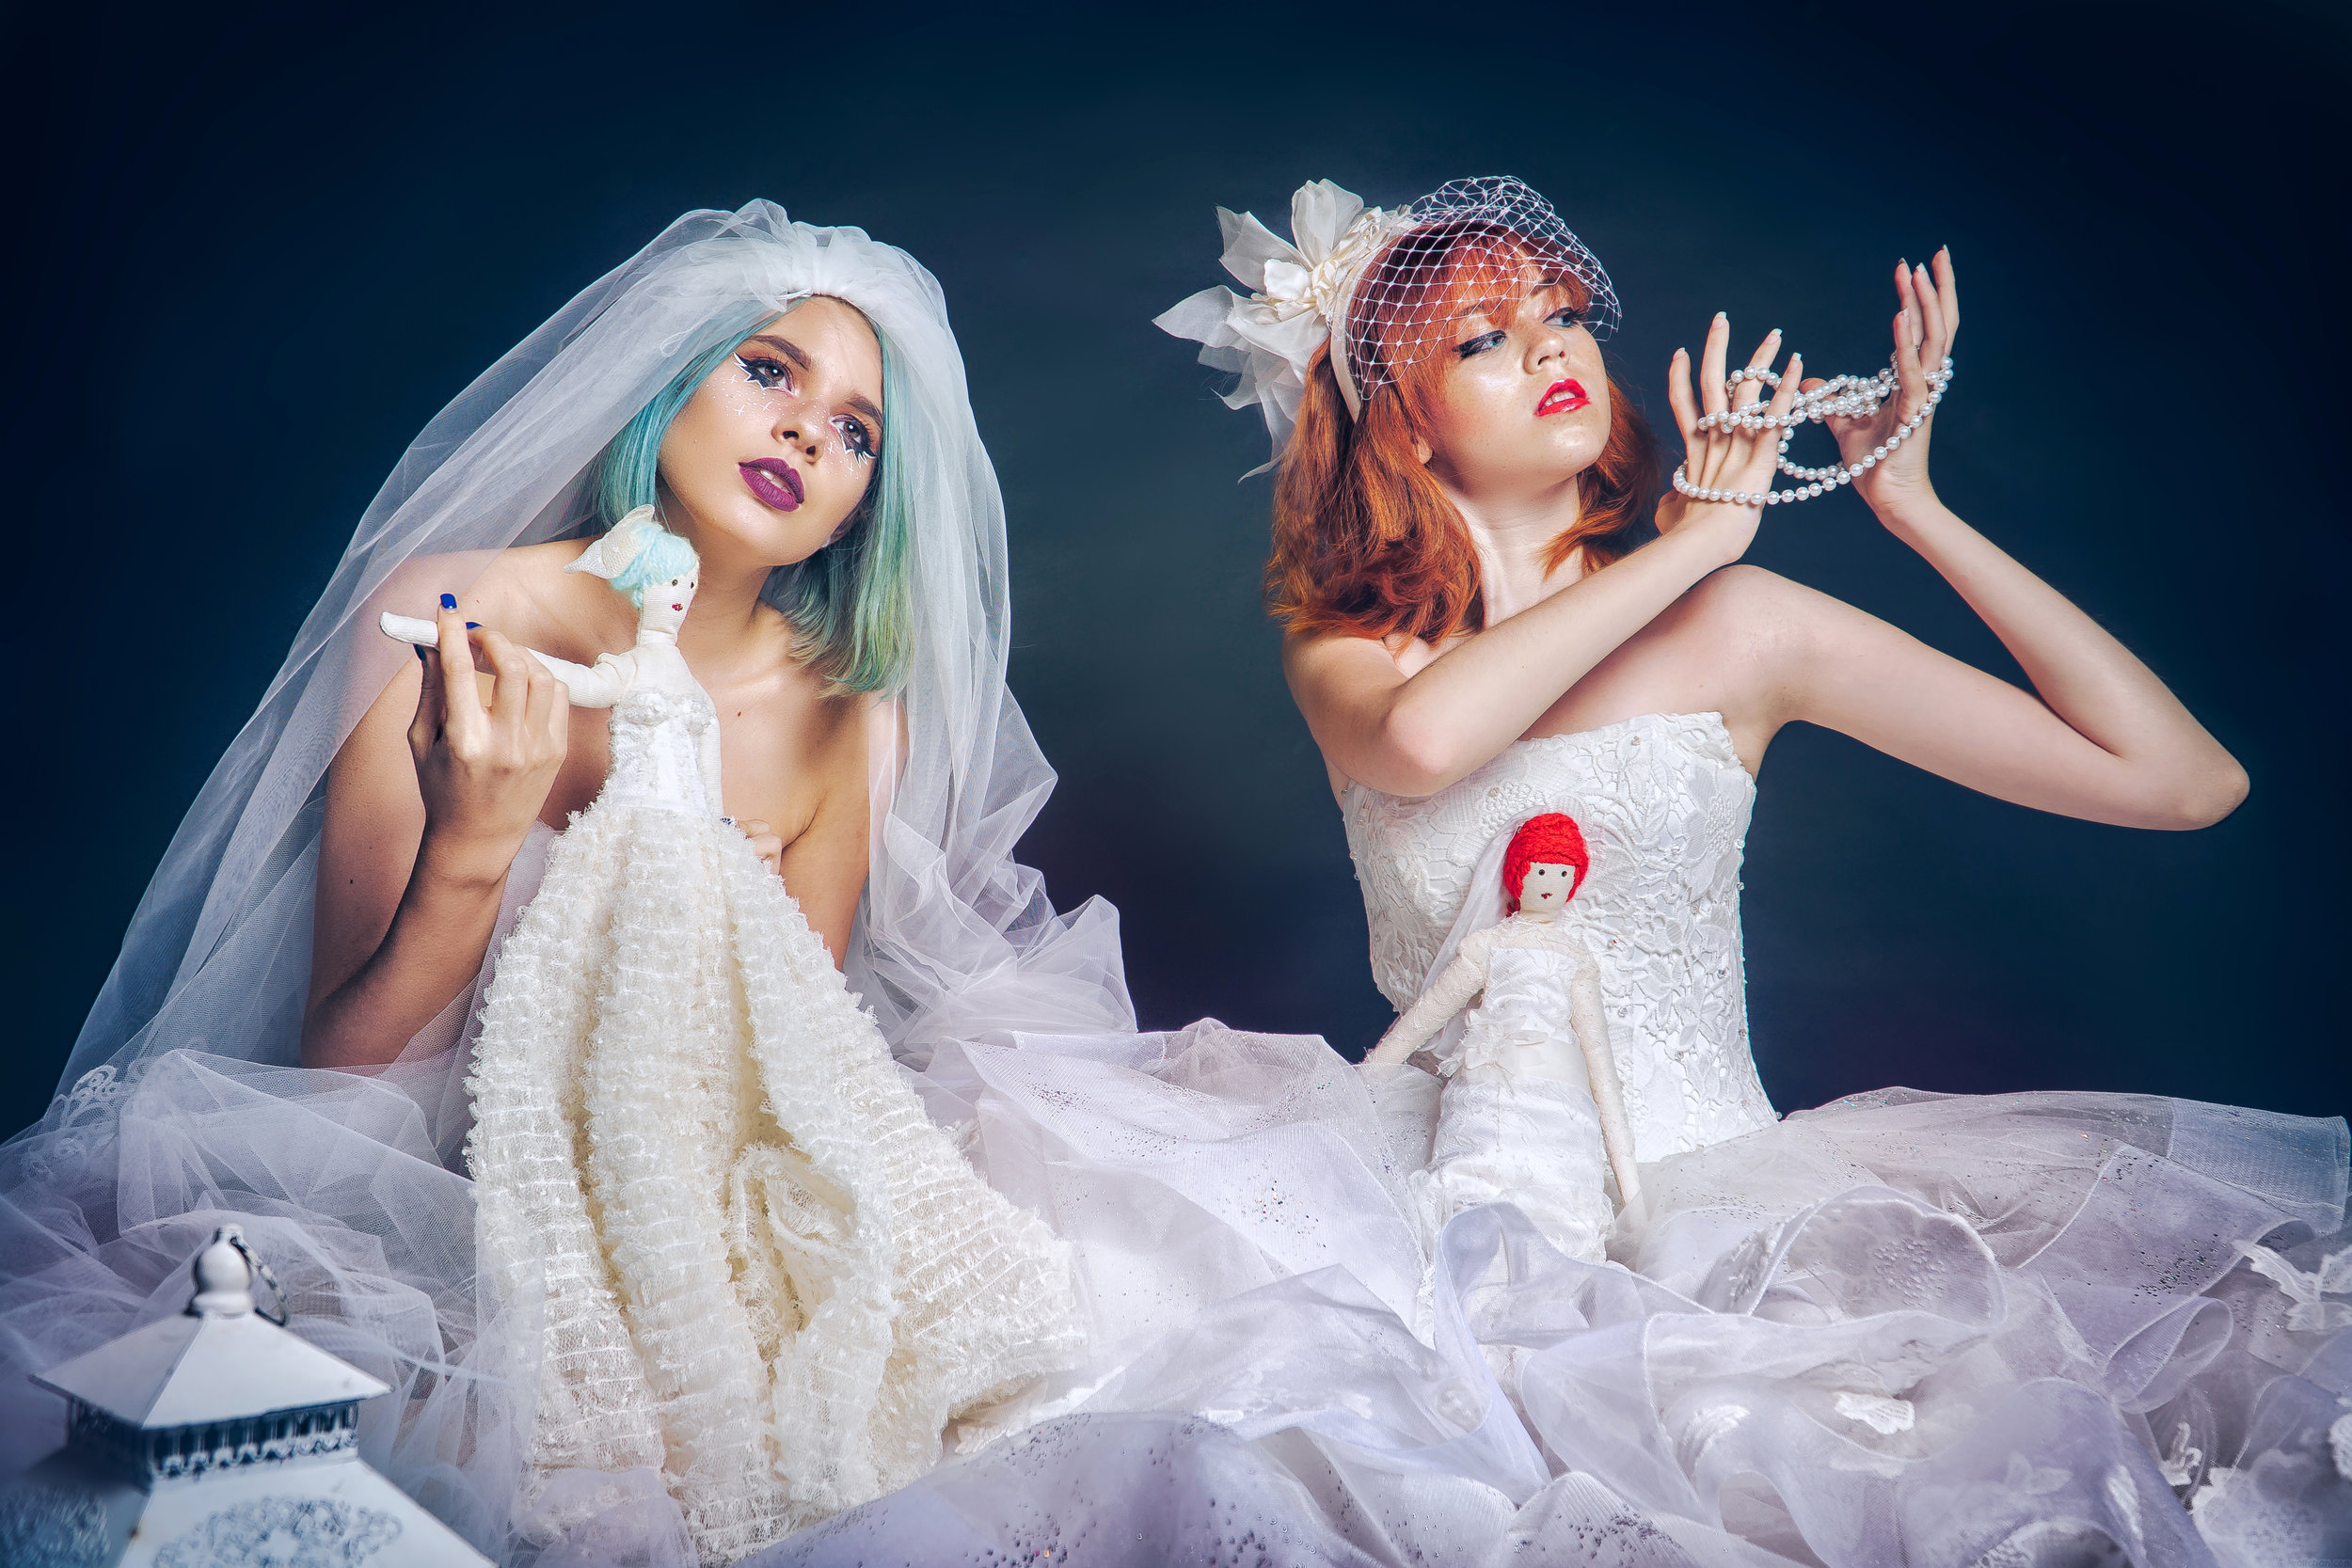 brides and dolls mirese miresici fantasy fotografie videografie Crina Popescu Universitate nunta aniversare fashion.jpg